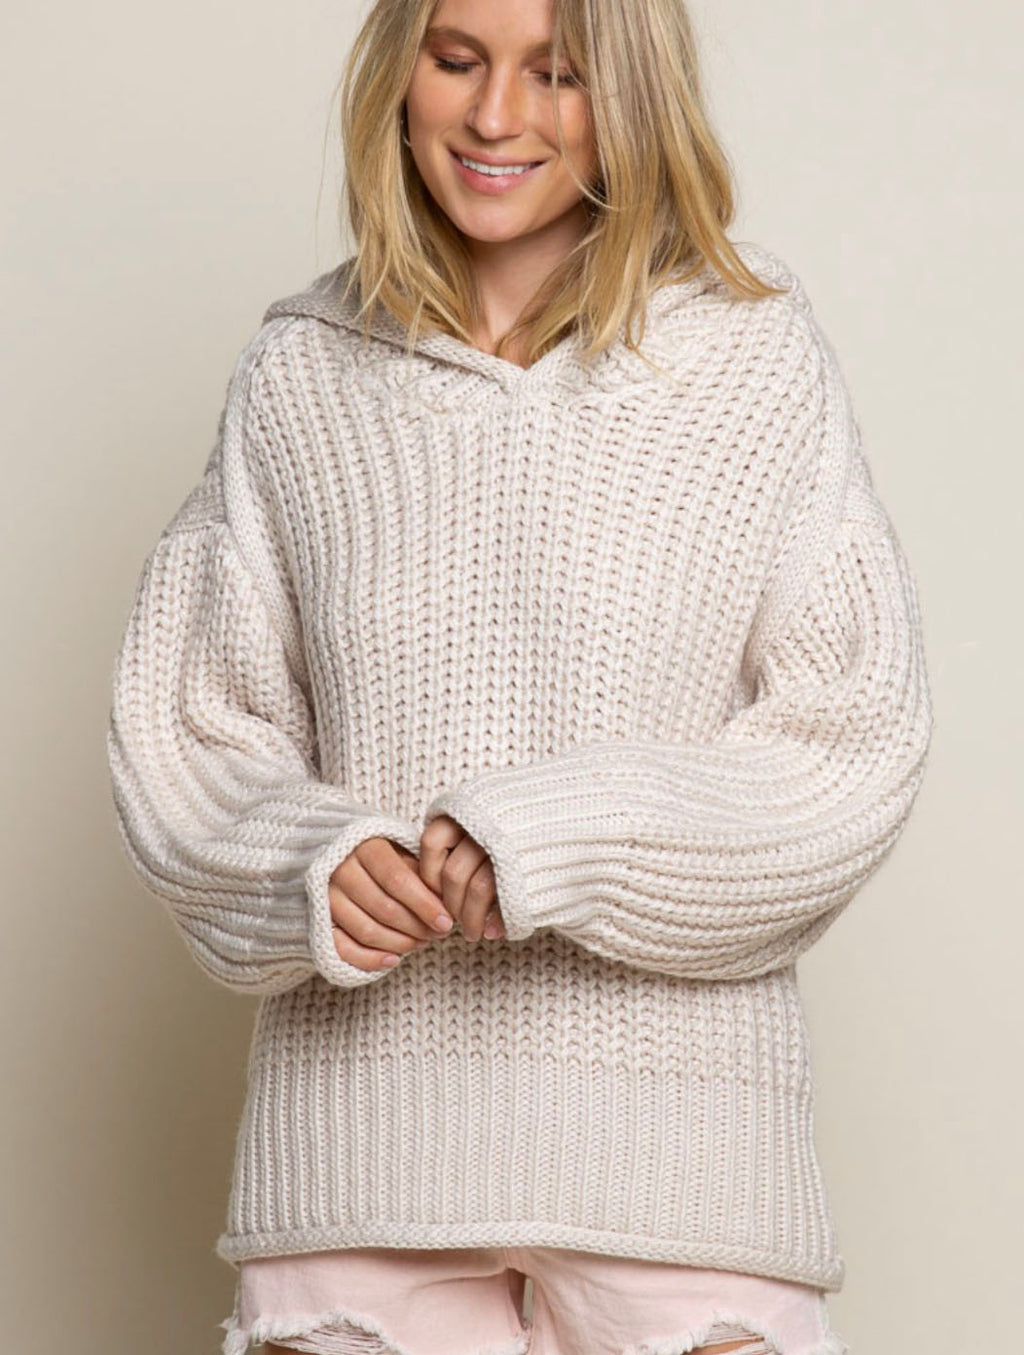 POL Knit Sweater in Powder Beige